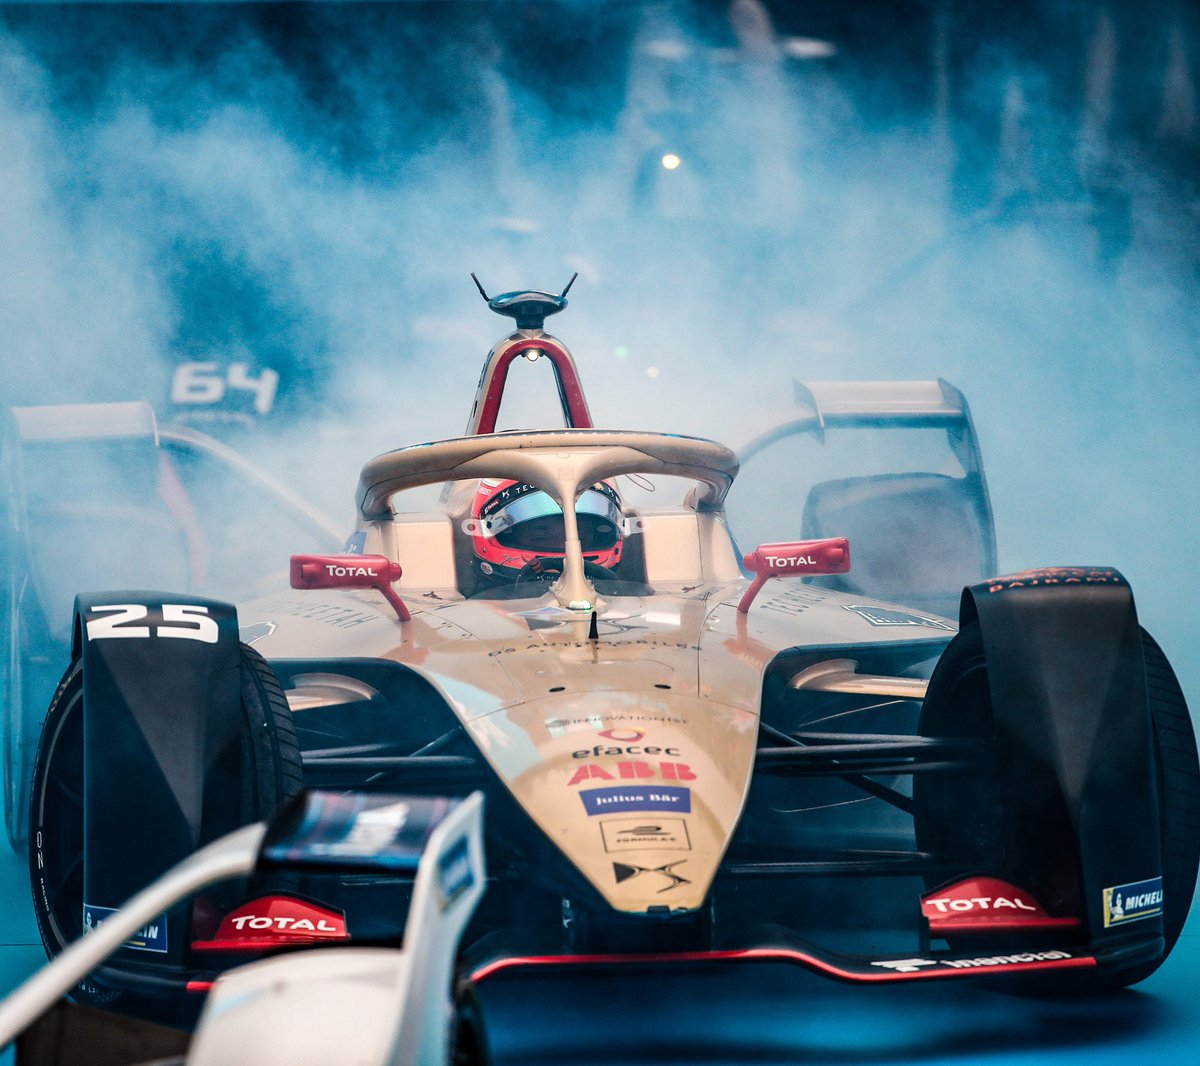 To my fans, pick your favourite picture, tweet it telling me which race it was and what position i secured, including #FanBoost #JeanEricVergne #NYCEPrix and i will send you a signed copy of the one you selected. Thanks for your support #JEV25 #DSTecheetah #ABBFormulaE